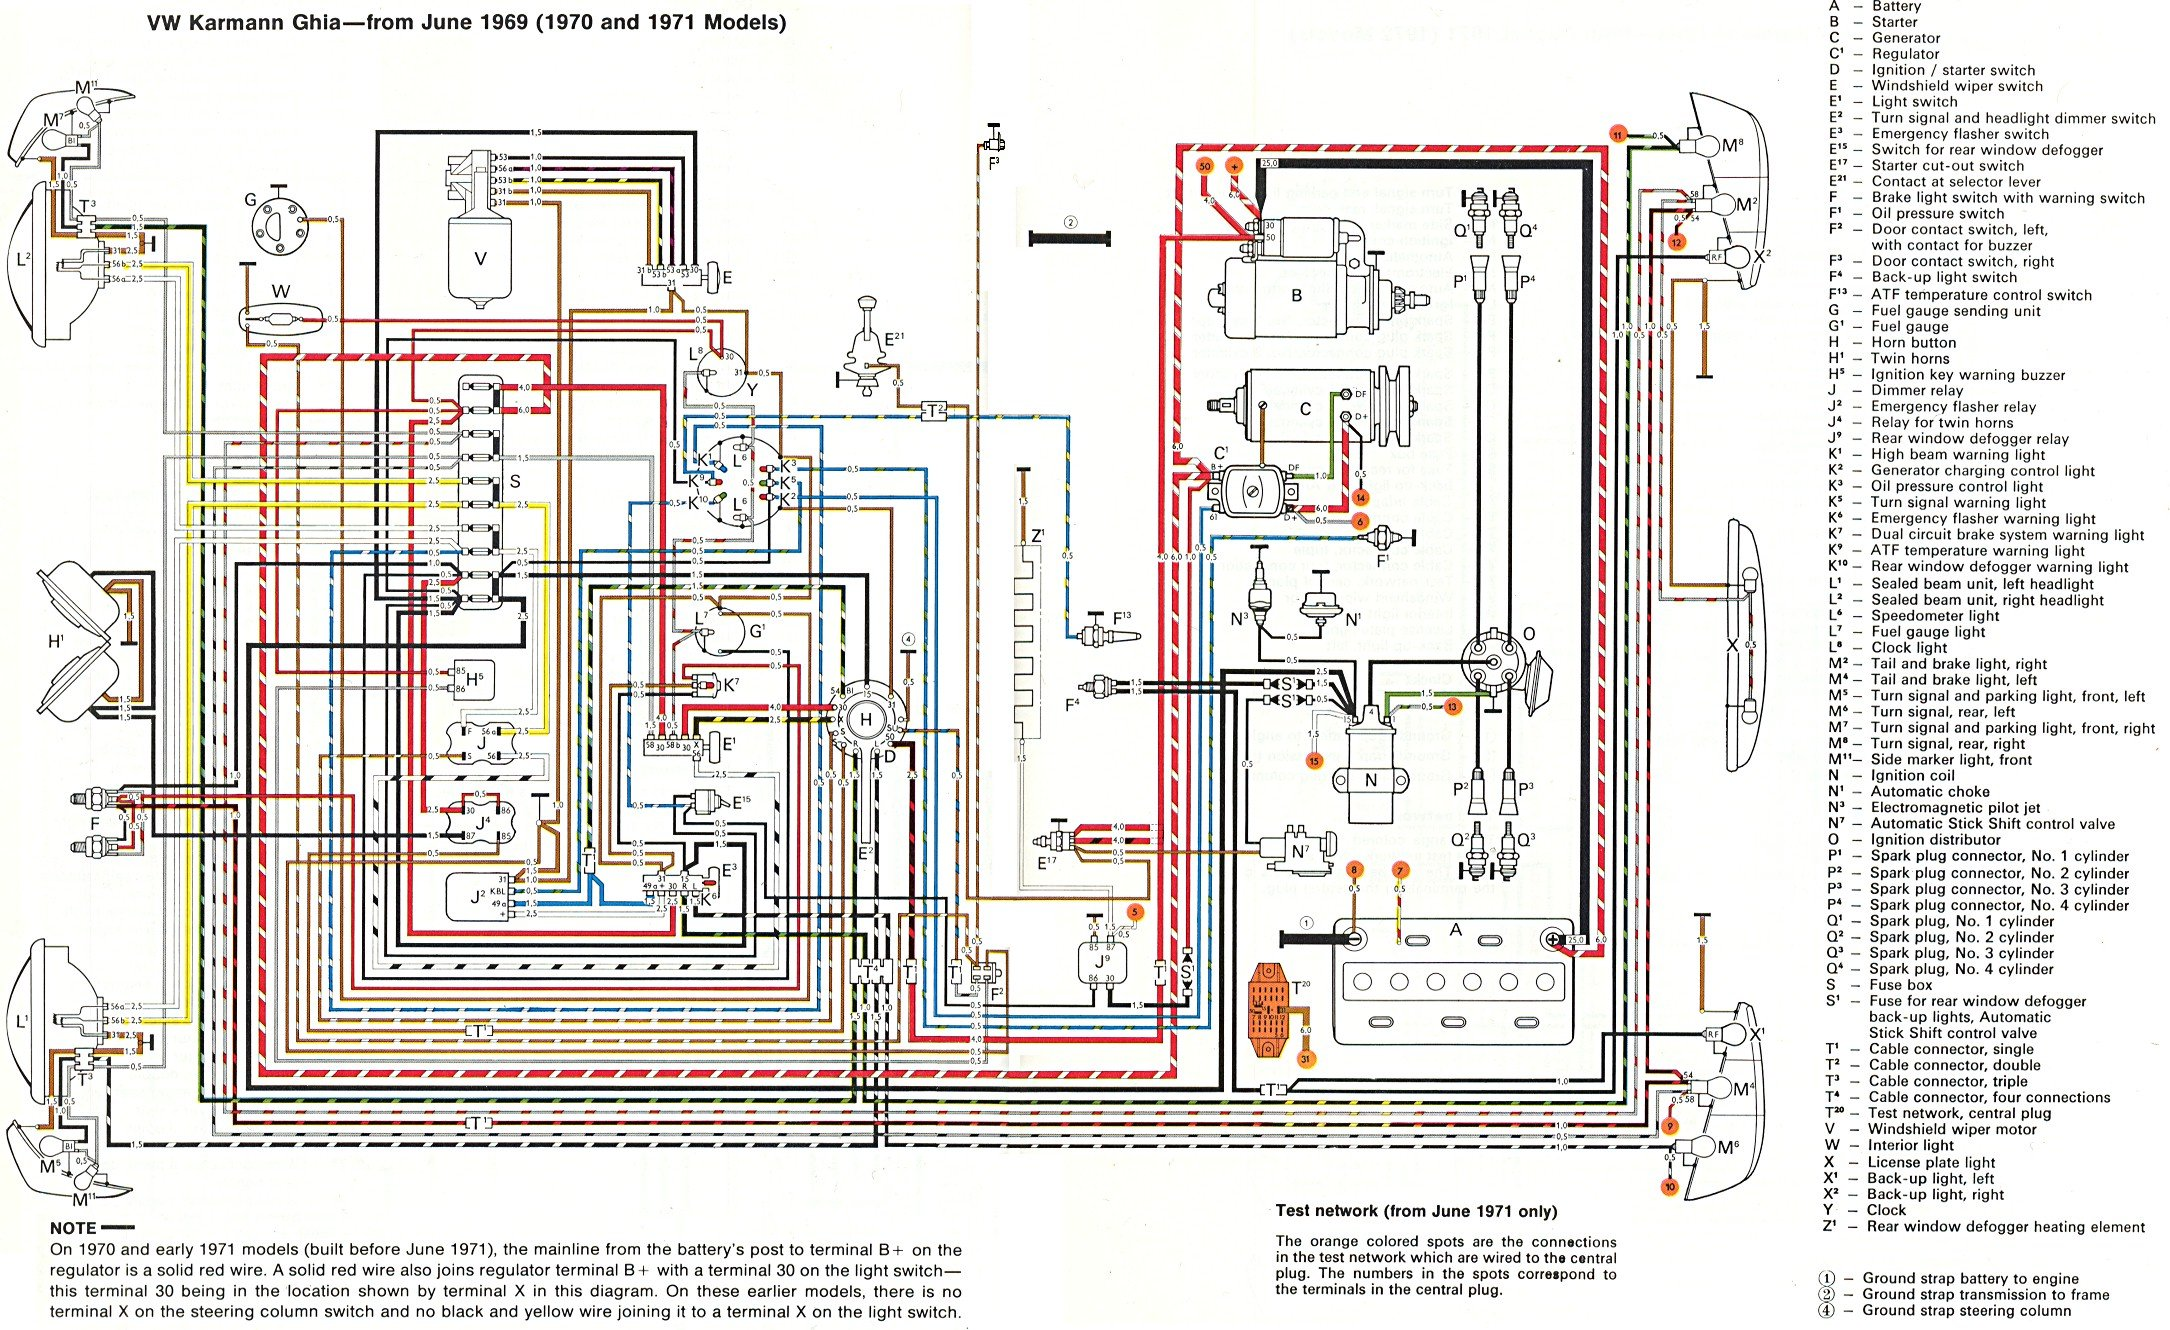 1963 Karmann Ghia Wiring Diagram Best Of Datasheet 1970 Chrysler 300 Thesamba Com Diagrams Rh